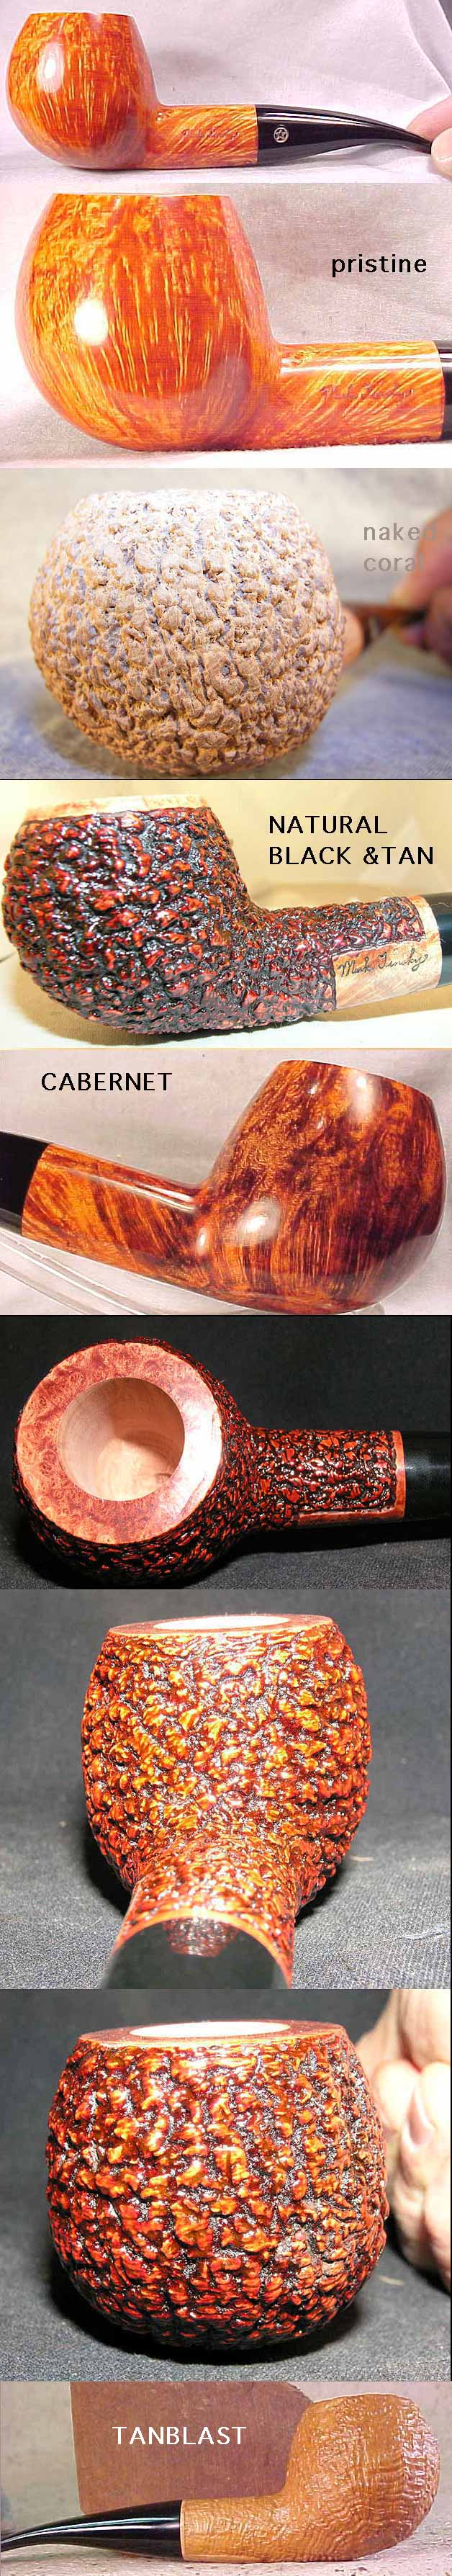 GOLD APPLE Pipe